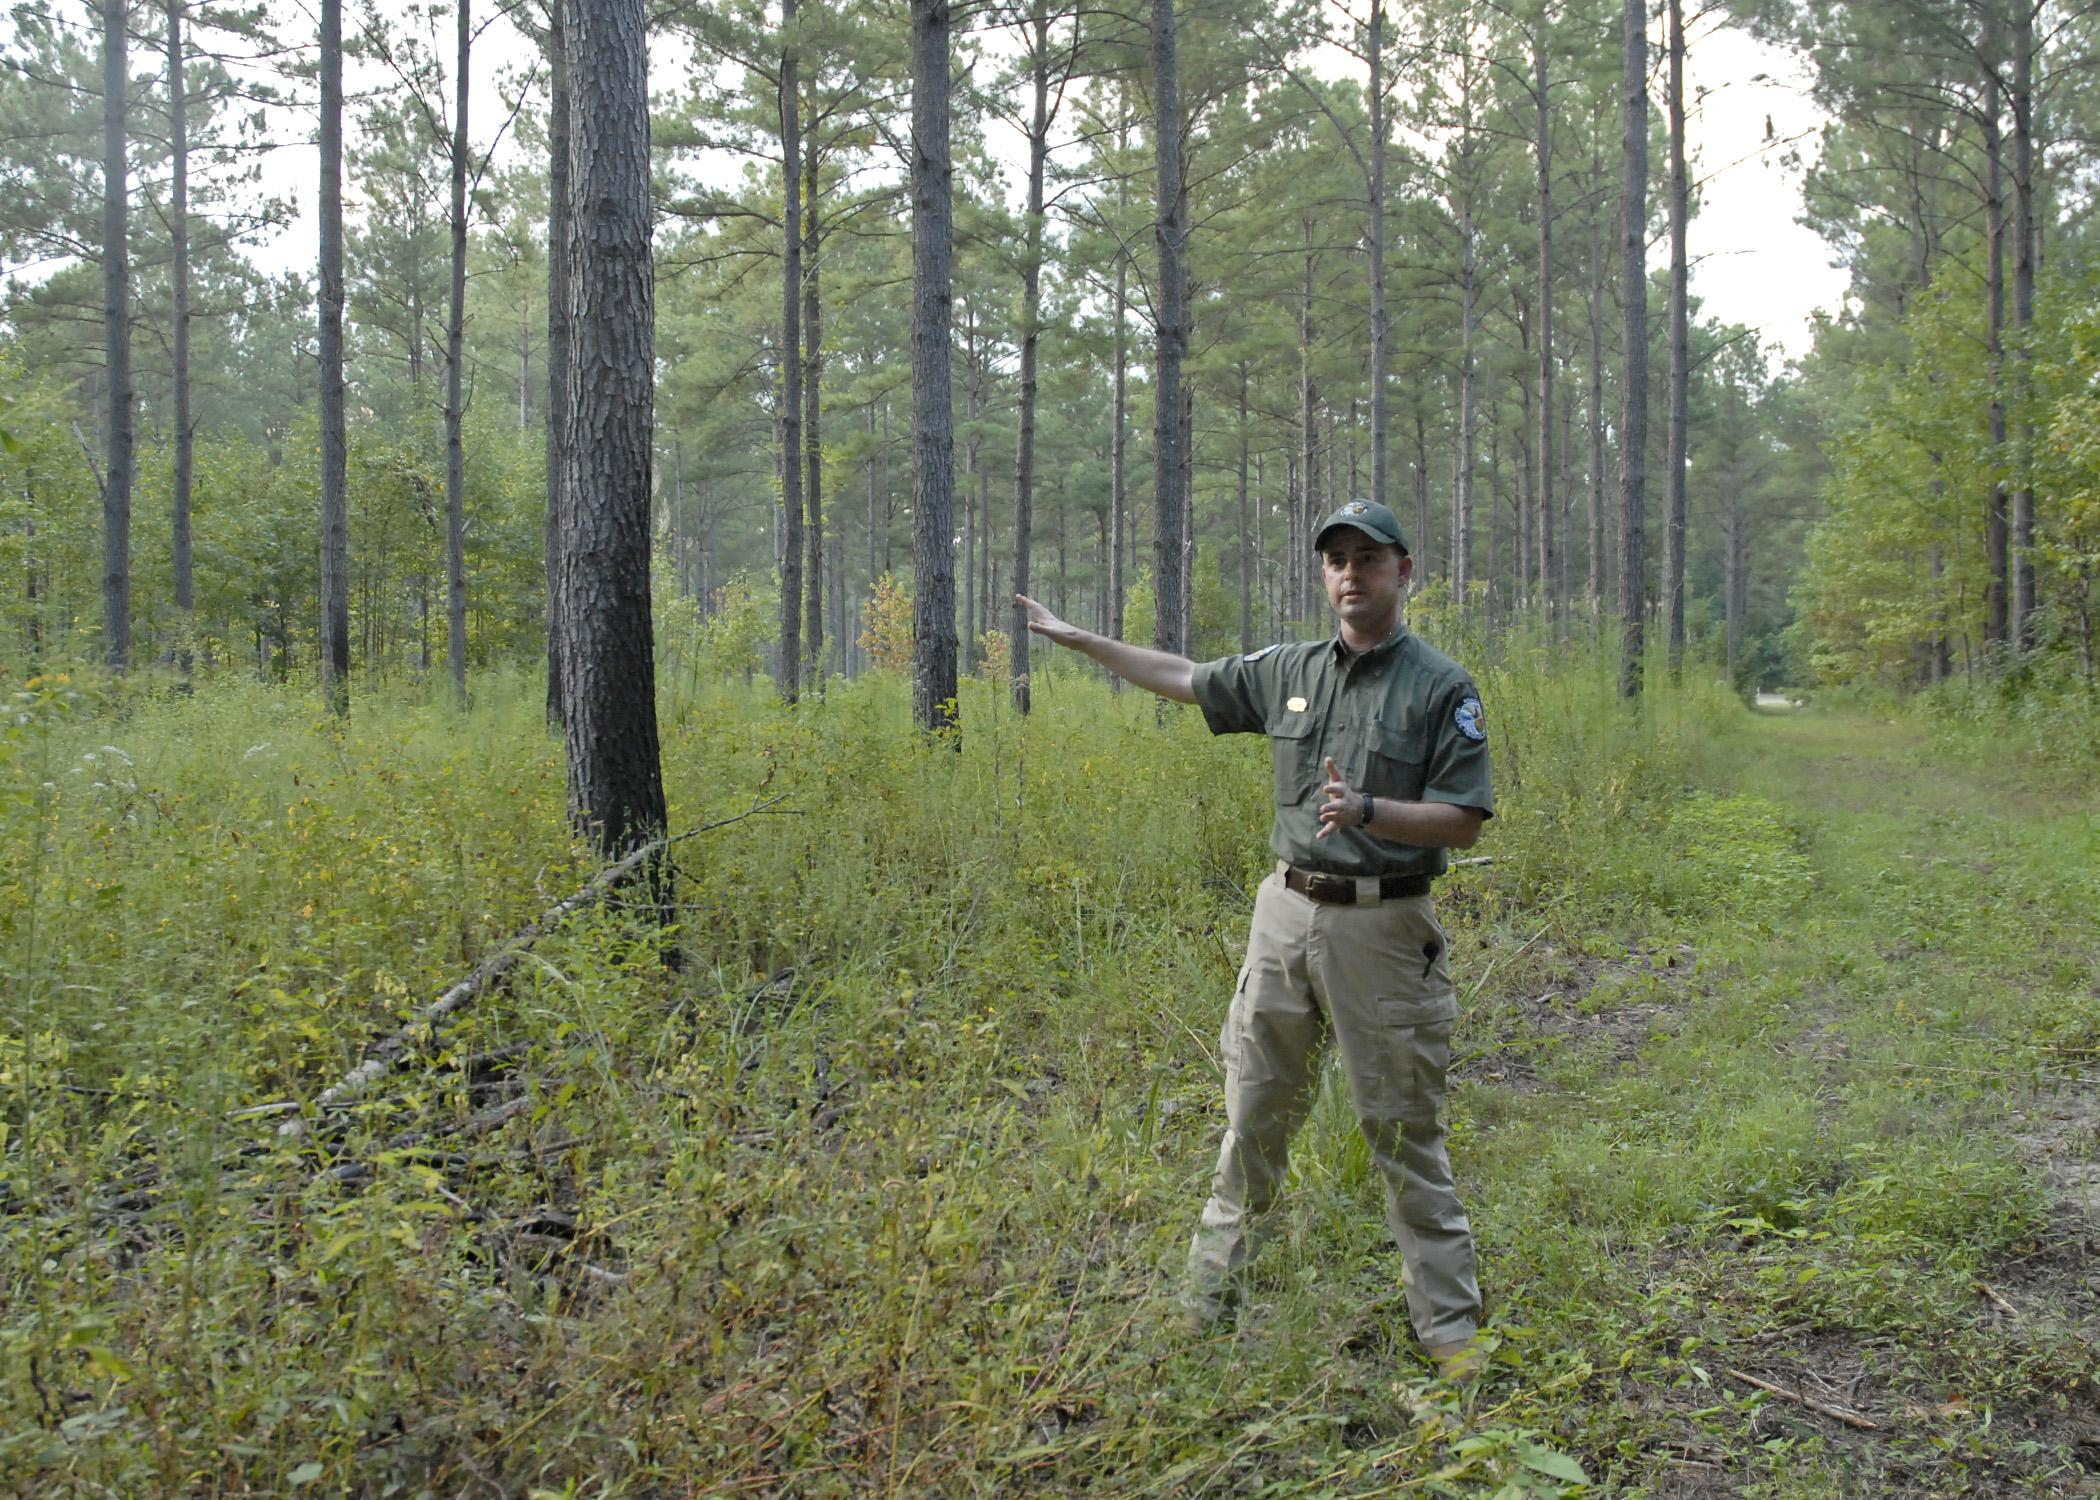 Scott Edwards, a private lands wildlife biologist with the Mississippi Department of Wildlife, Fisheries and Parks, talks about how herbicides and controlled burns can benefit a pine stand on a demonstration farm near Aberdeen, Miss., on Thursday, Sept. 12, 2013. (Photo by MSU Ag Communications/Linda Breazeale)